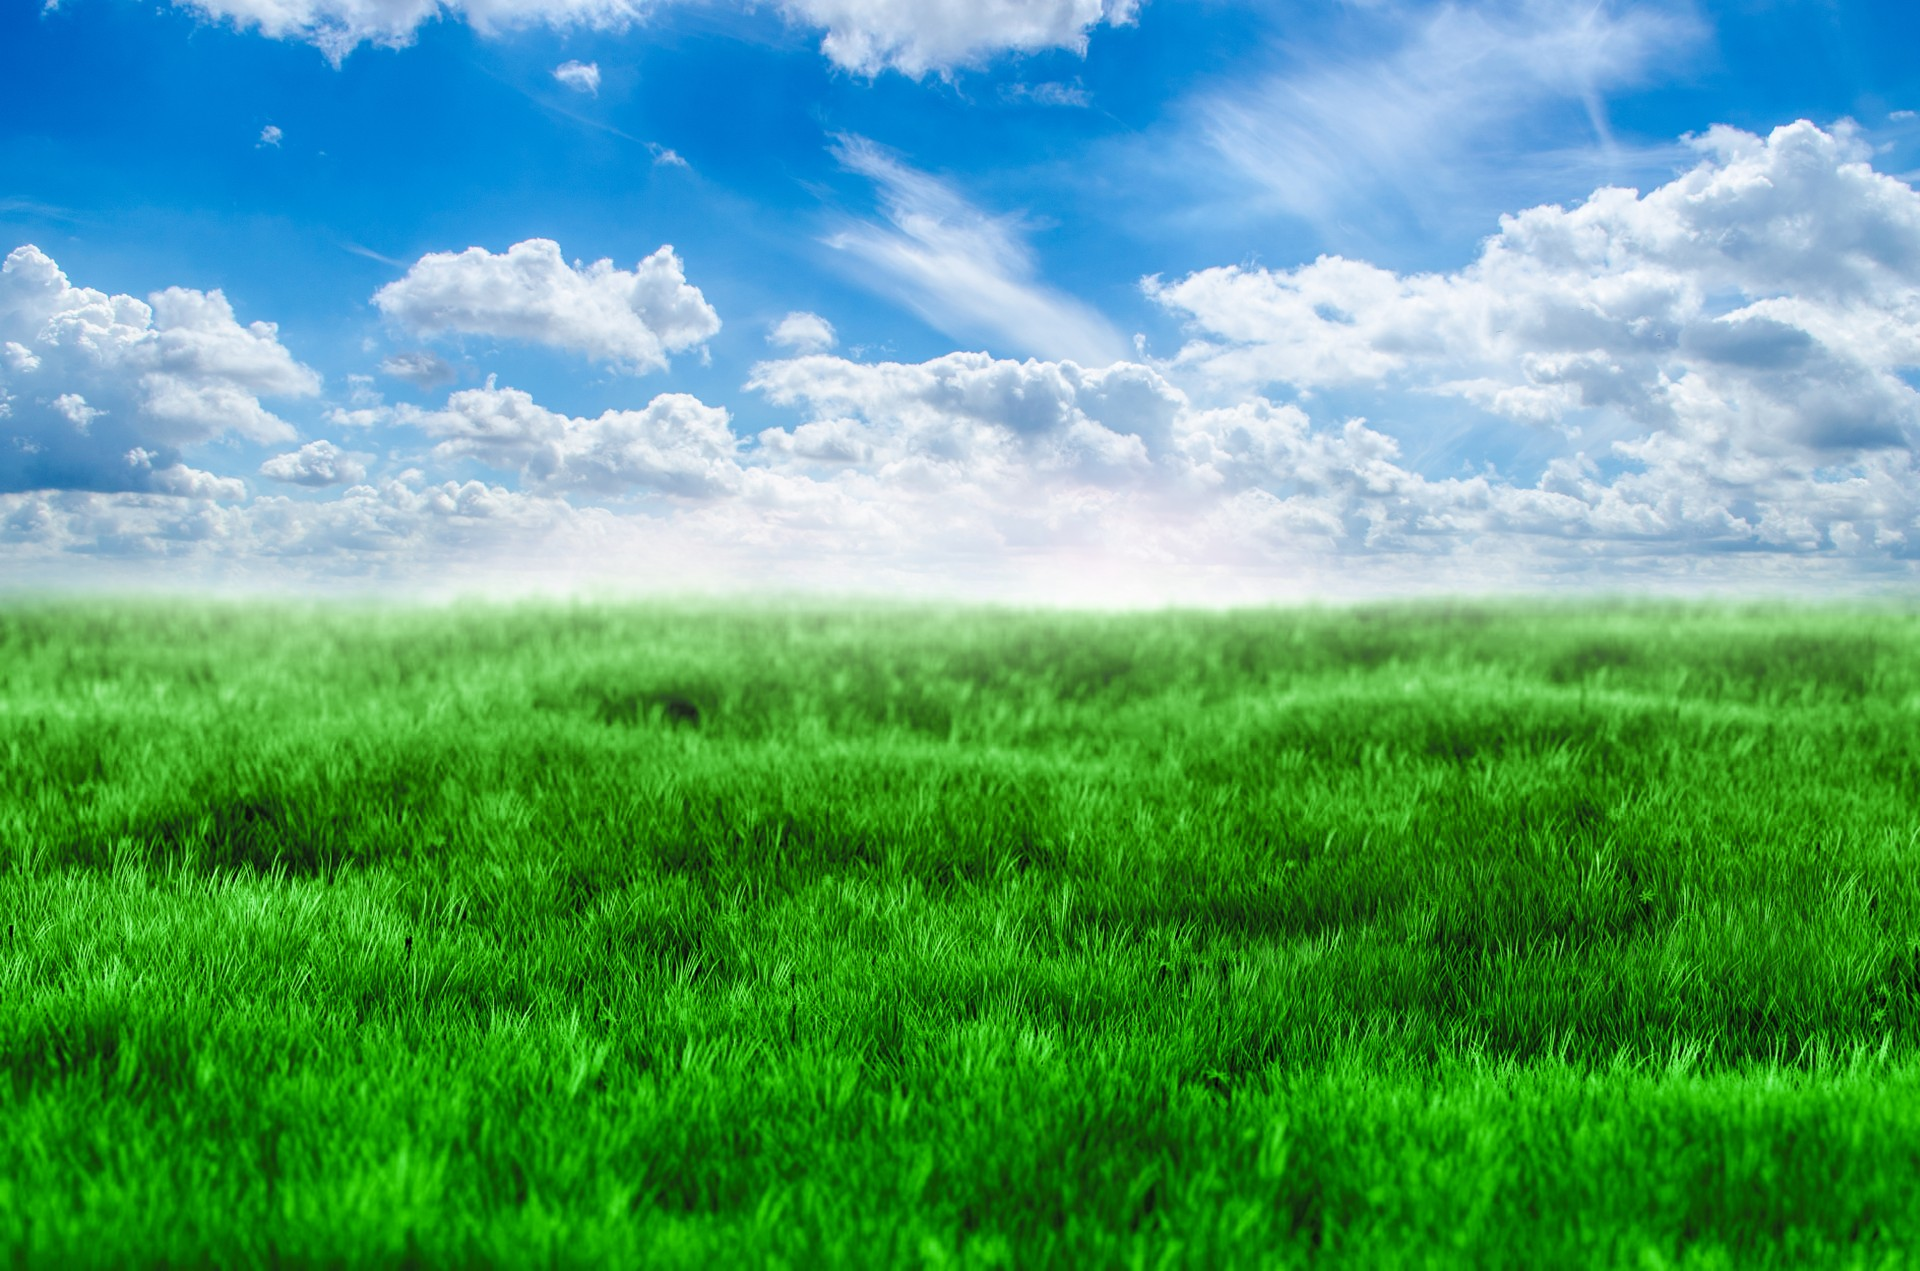 Green Grass And Blue Sky Free Stock Photo - Public Domain Pictures